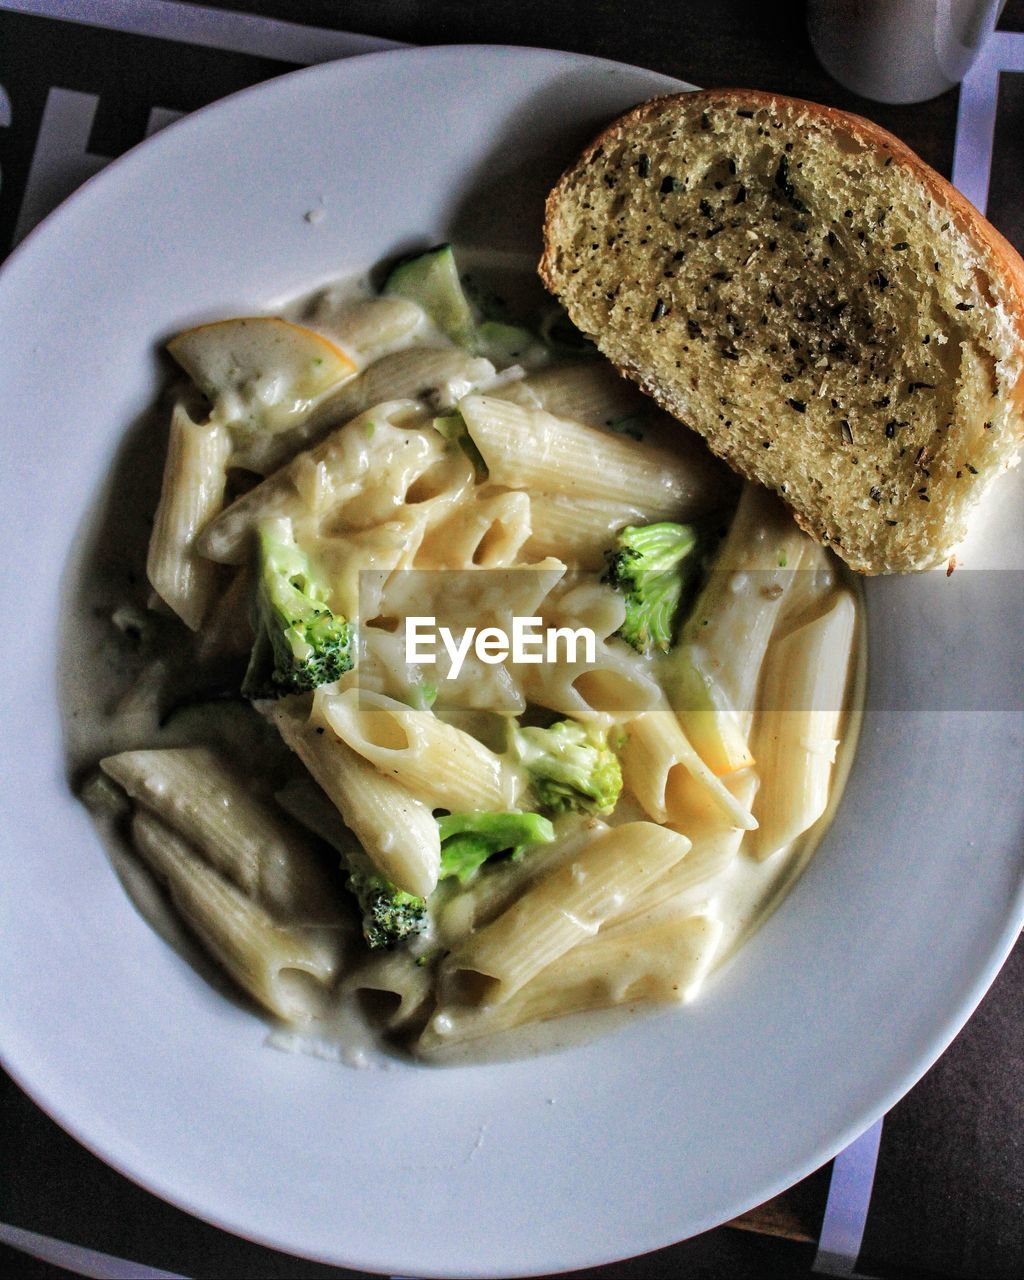 food and drink, food, ready-to-eat, plate, healthy eating, freshness, wellbeing, bread, indoors, close-up, no people, meal, high angle view, still life, vegetable, serving size, pasta, table, italian food, eating utensil, crockery, snack, serving dish, garnish, temptation, dinner